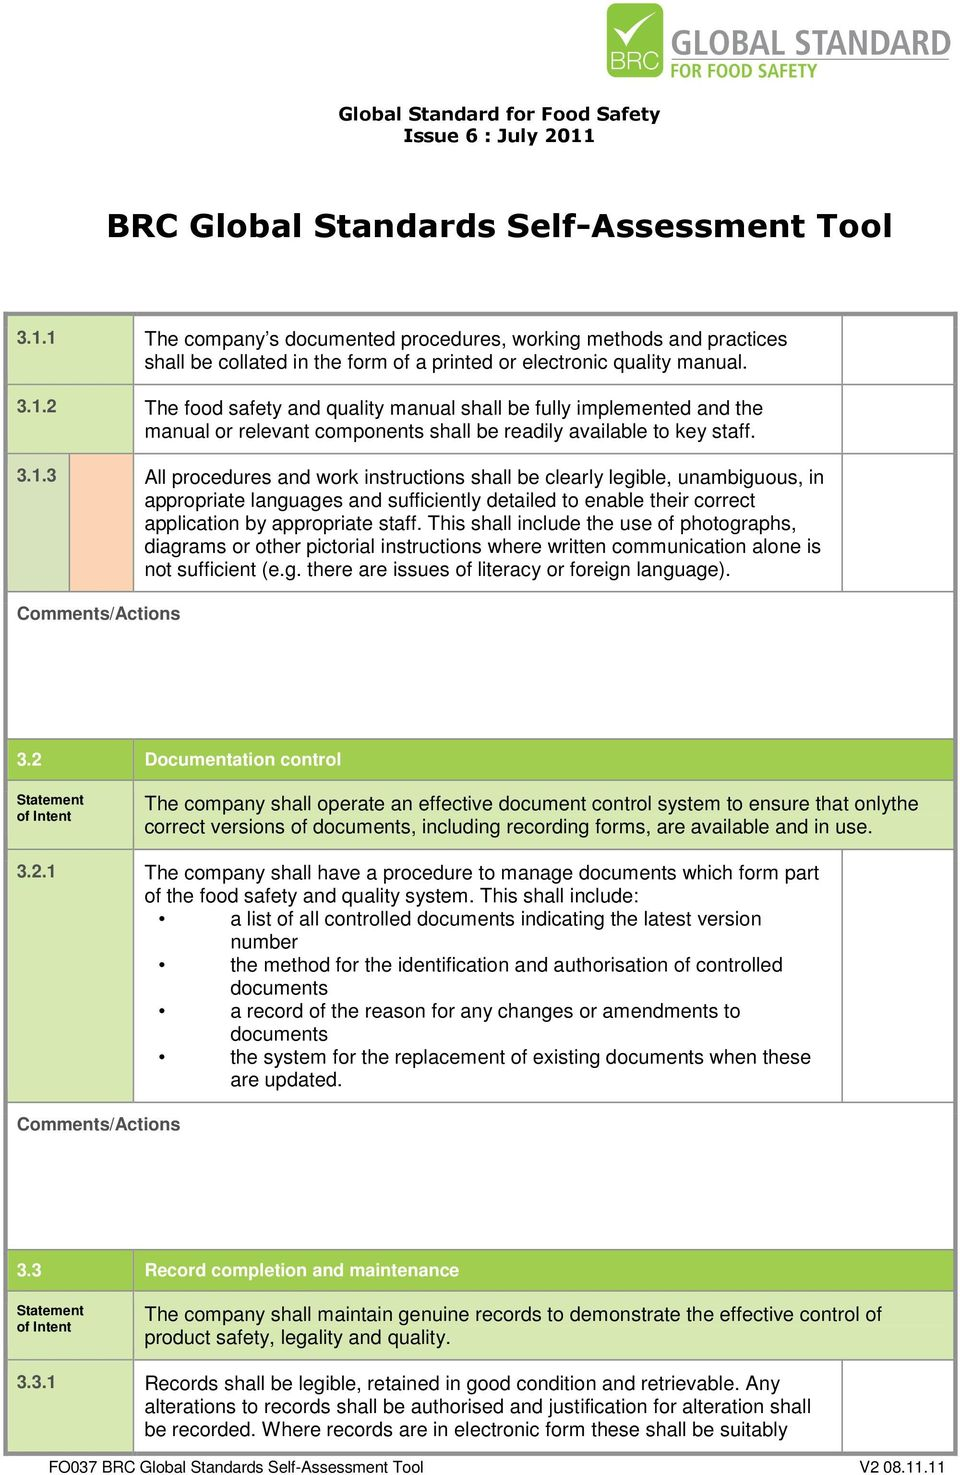 BRC GLOBAL STANDARDS SELF-ASSESSMENT TOOL - PDF